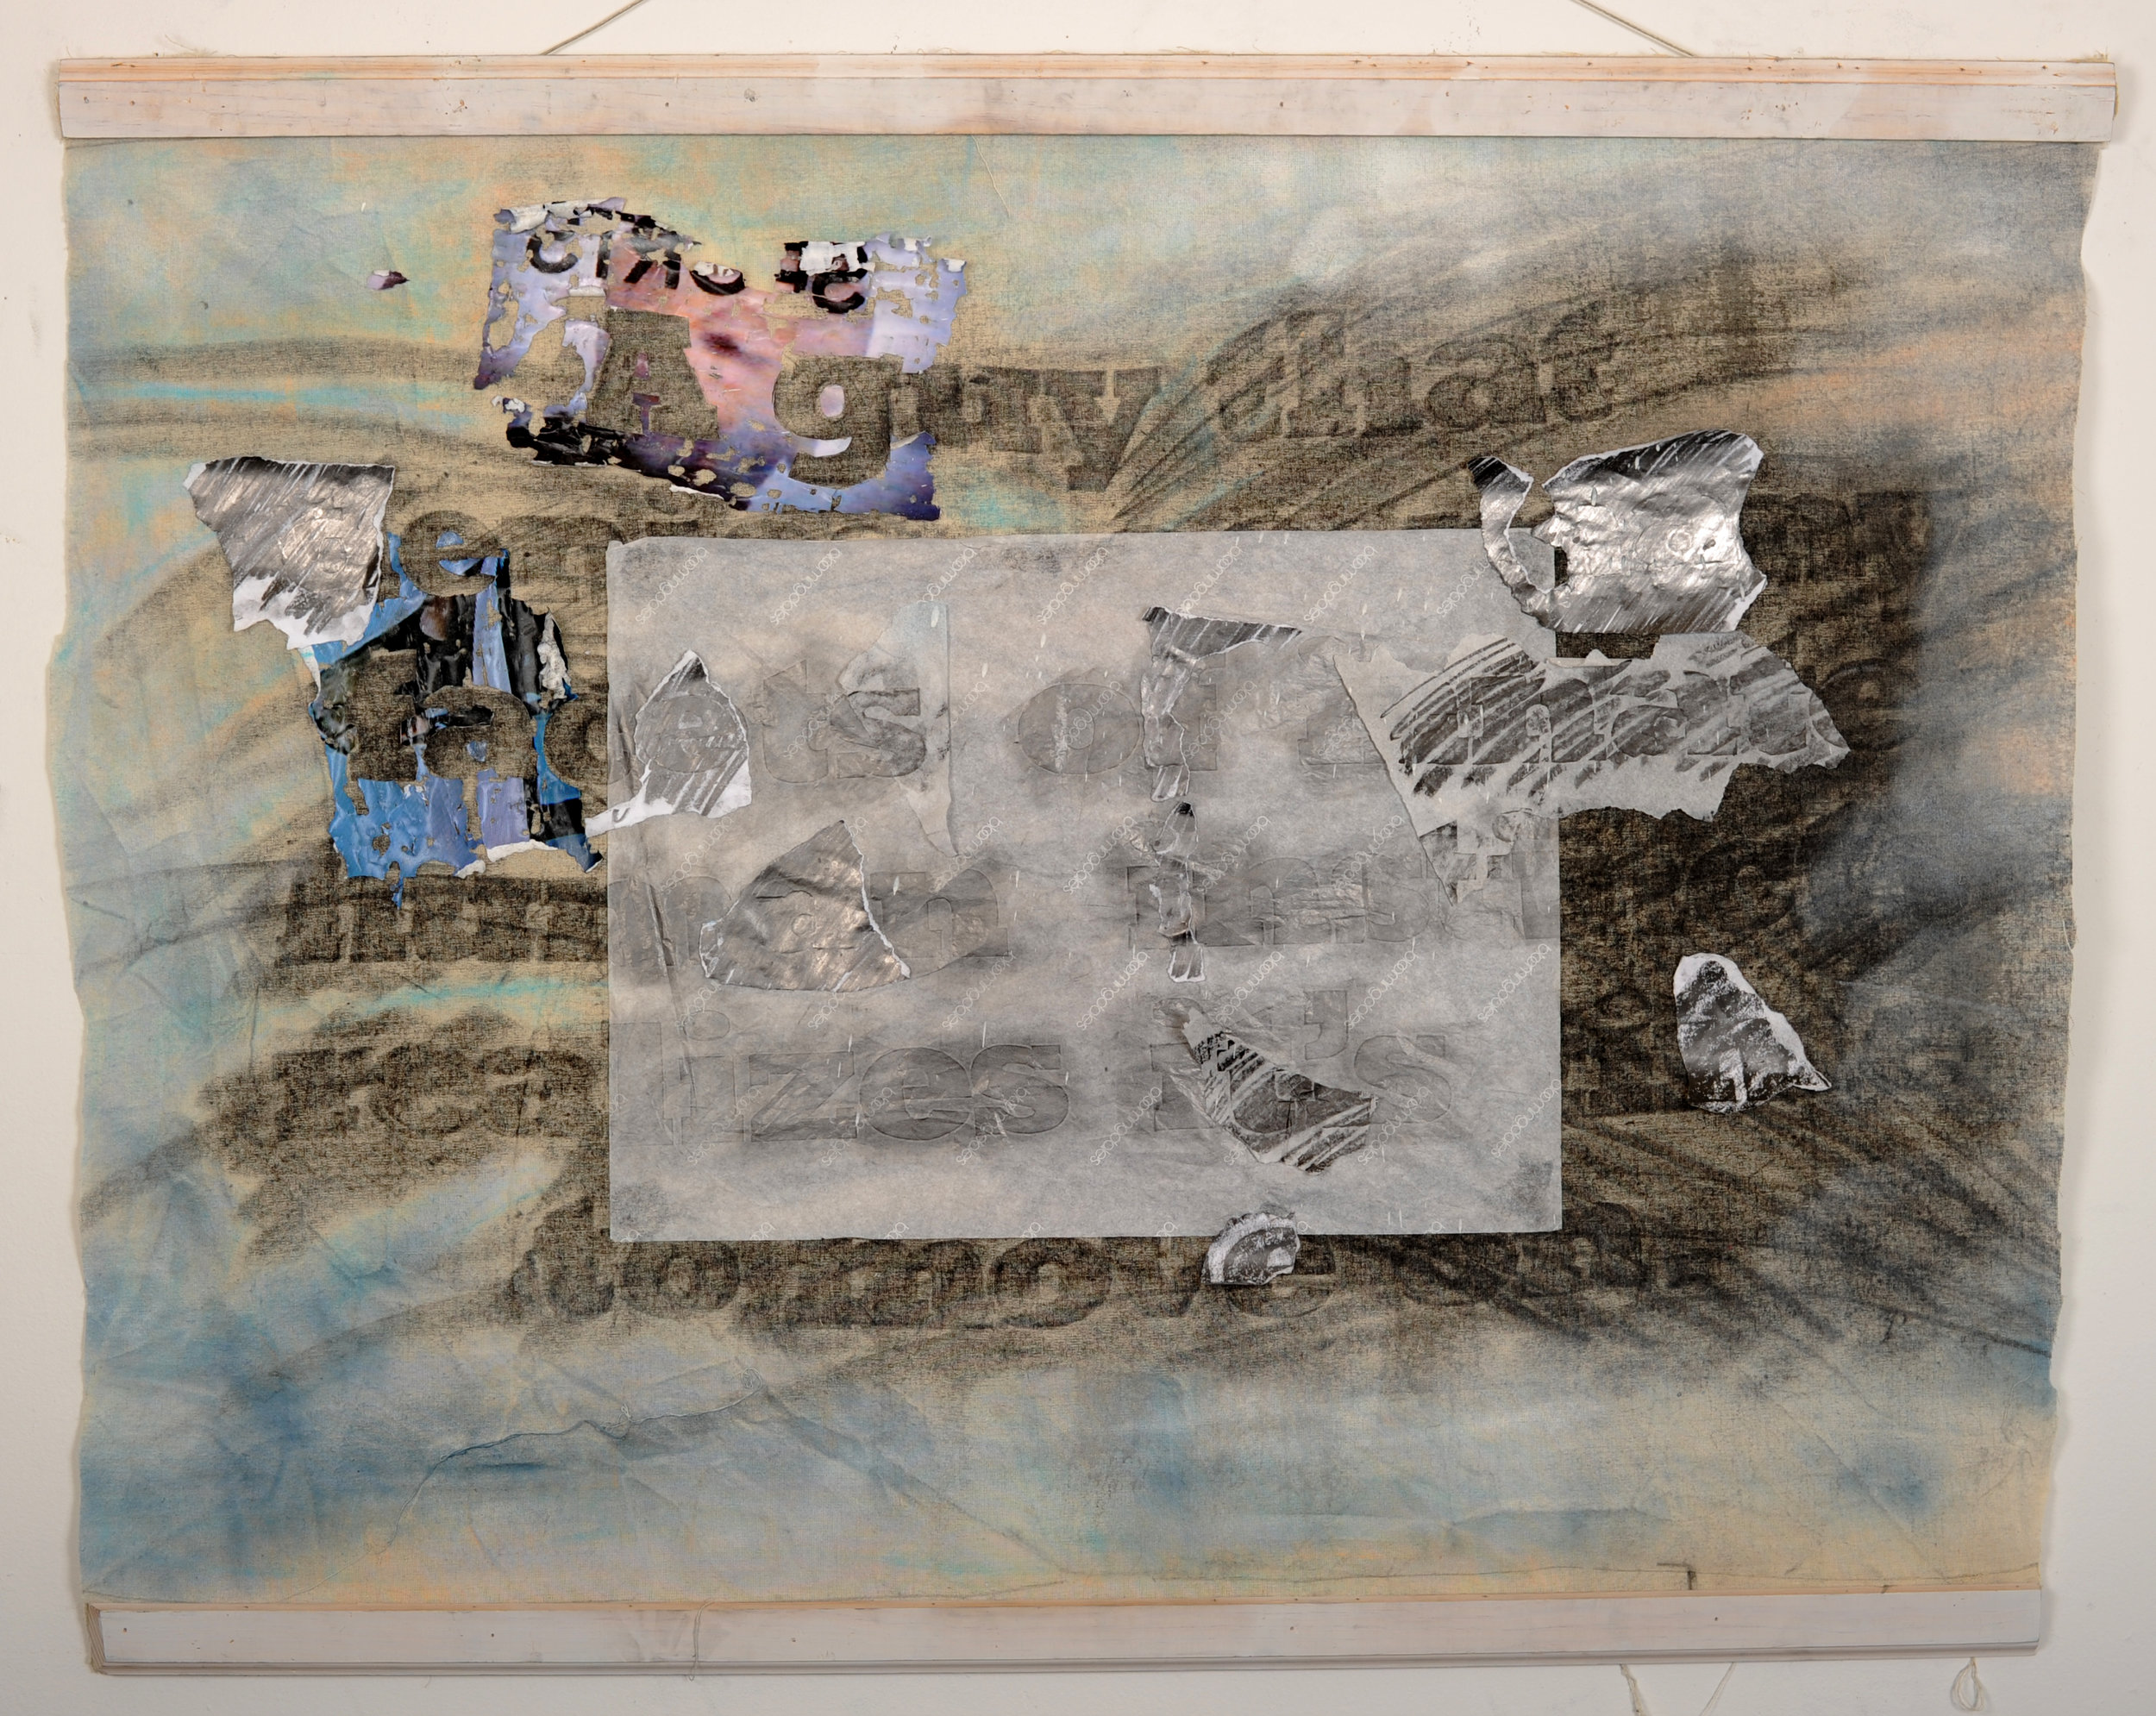 Inconclusive Conclusion , MS #75, 2011 Graphite, spray paint, pastel, shaved photos, tissue paper, muslin, wood, wire 40 x 43 inches